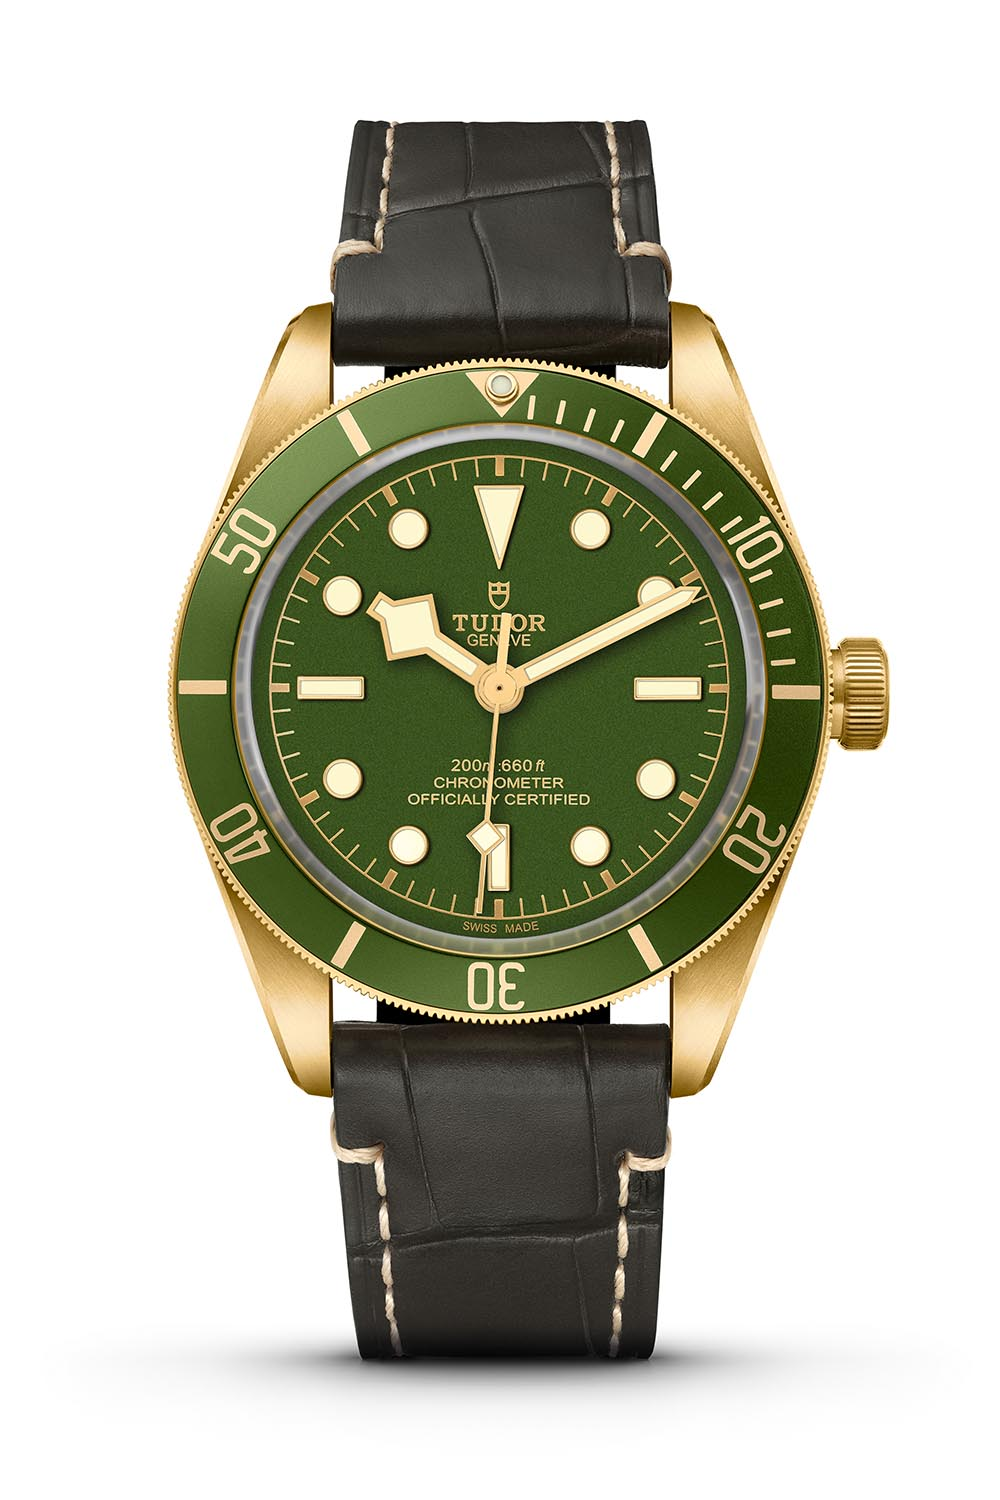 Tudor Black Bay Fifty-Eight 18k yellow gold green dial 79018V